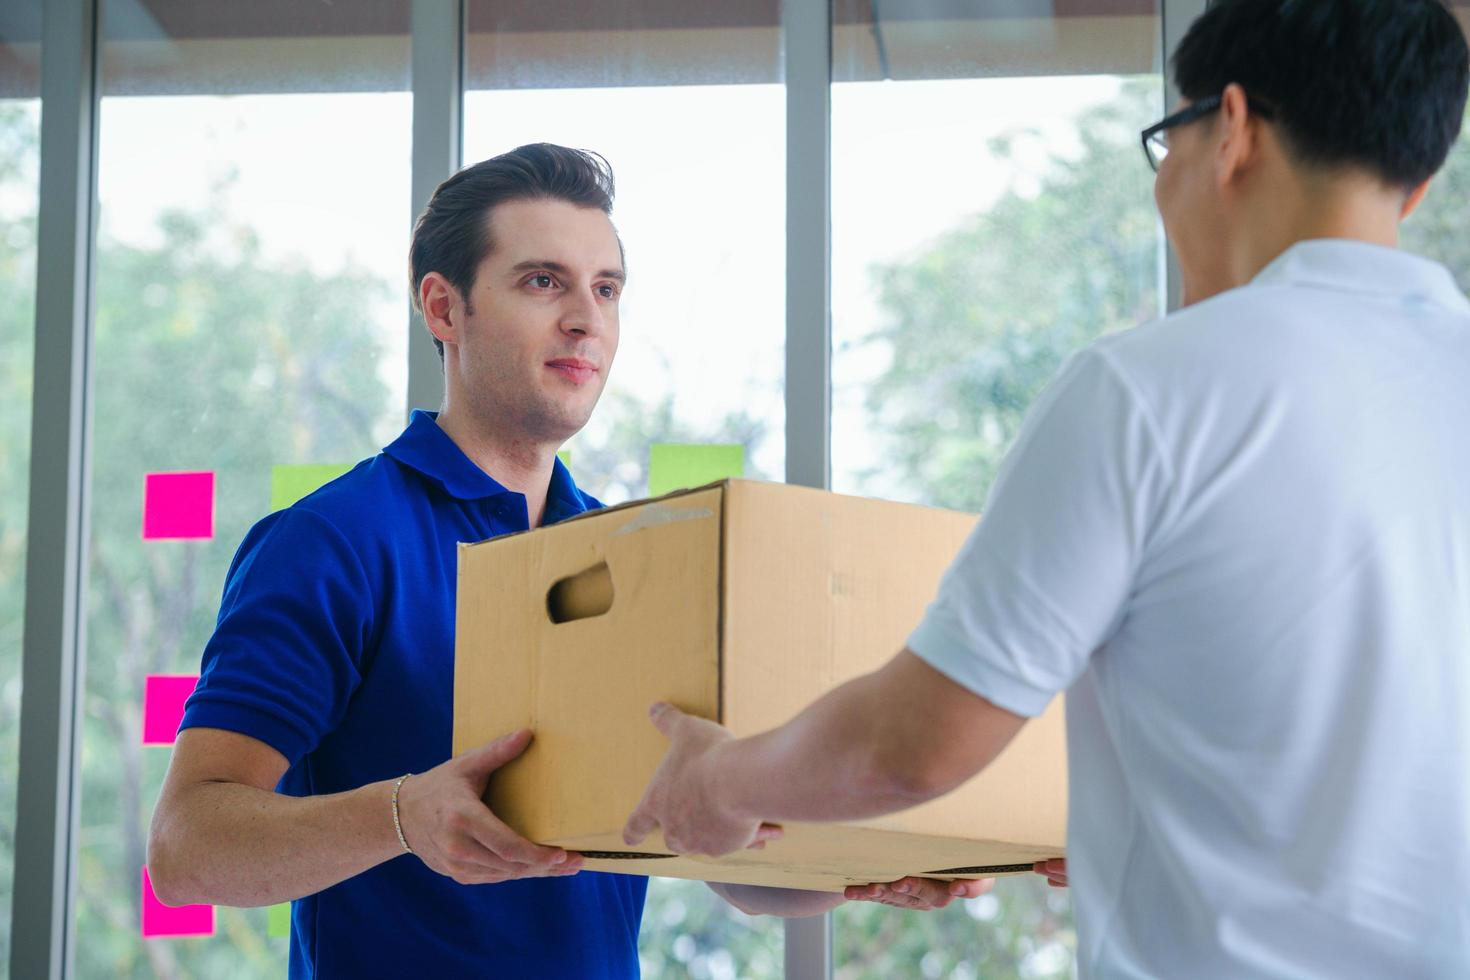 Delivery man handing package to customer  photo